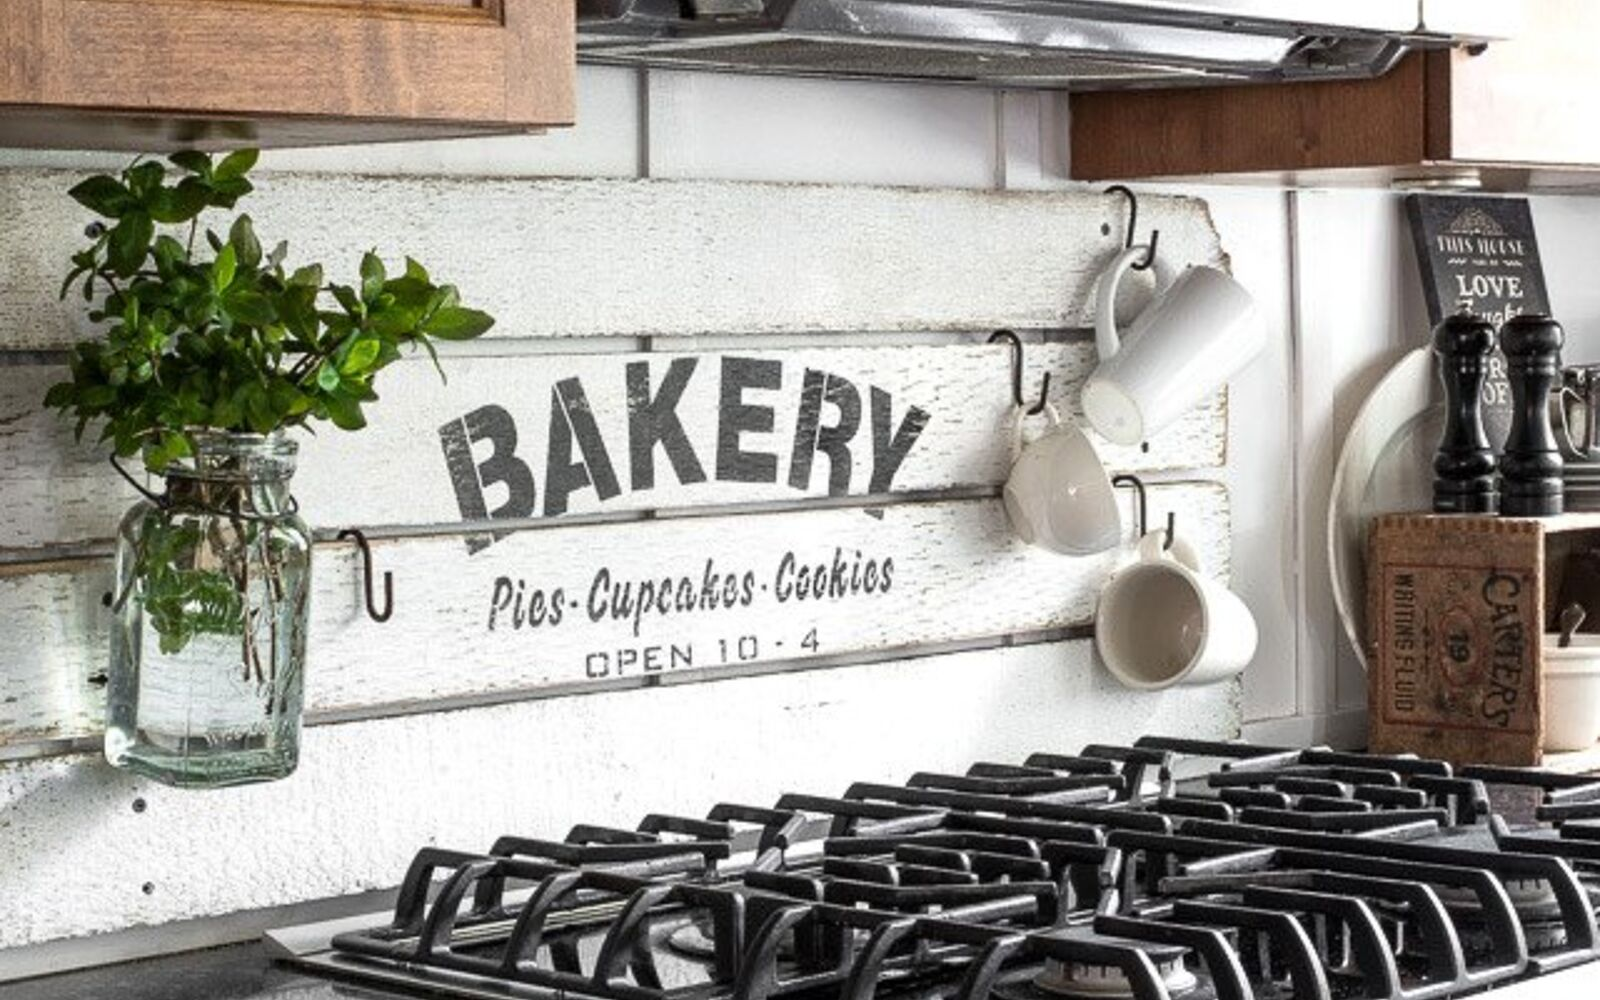 s 31 update ideas to make your kitchen look fabulous, Make a rustic shiplap bakery sign